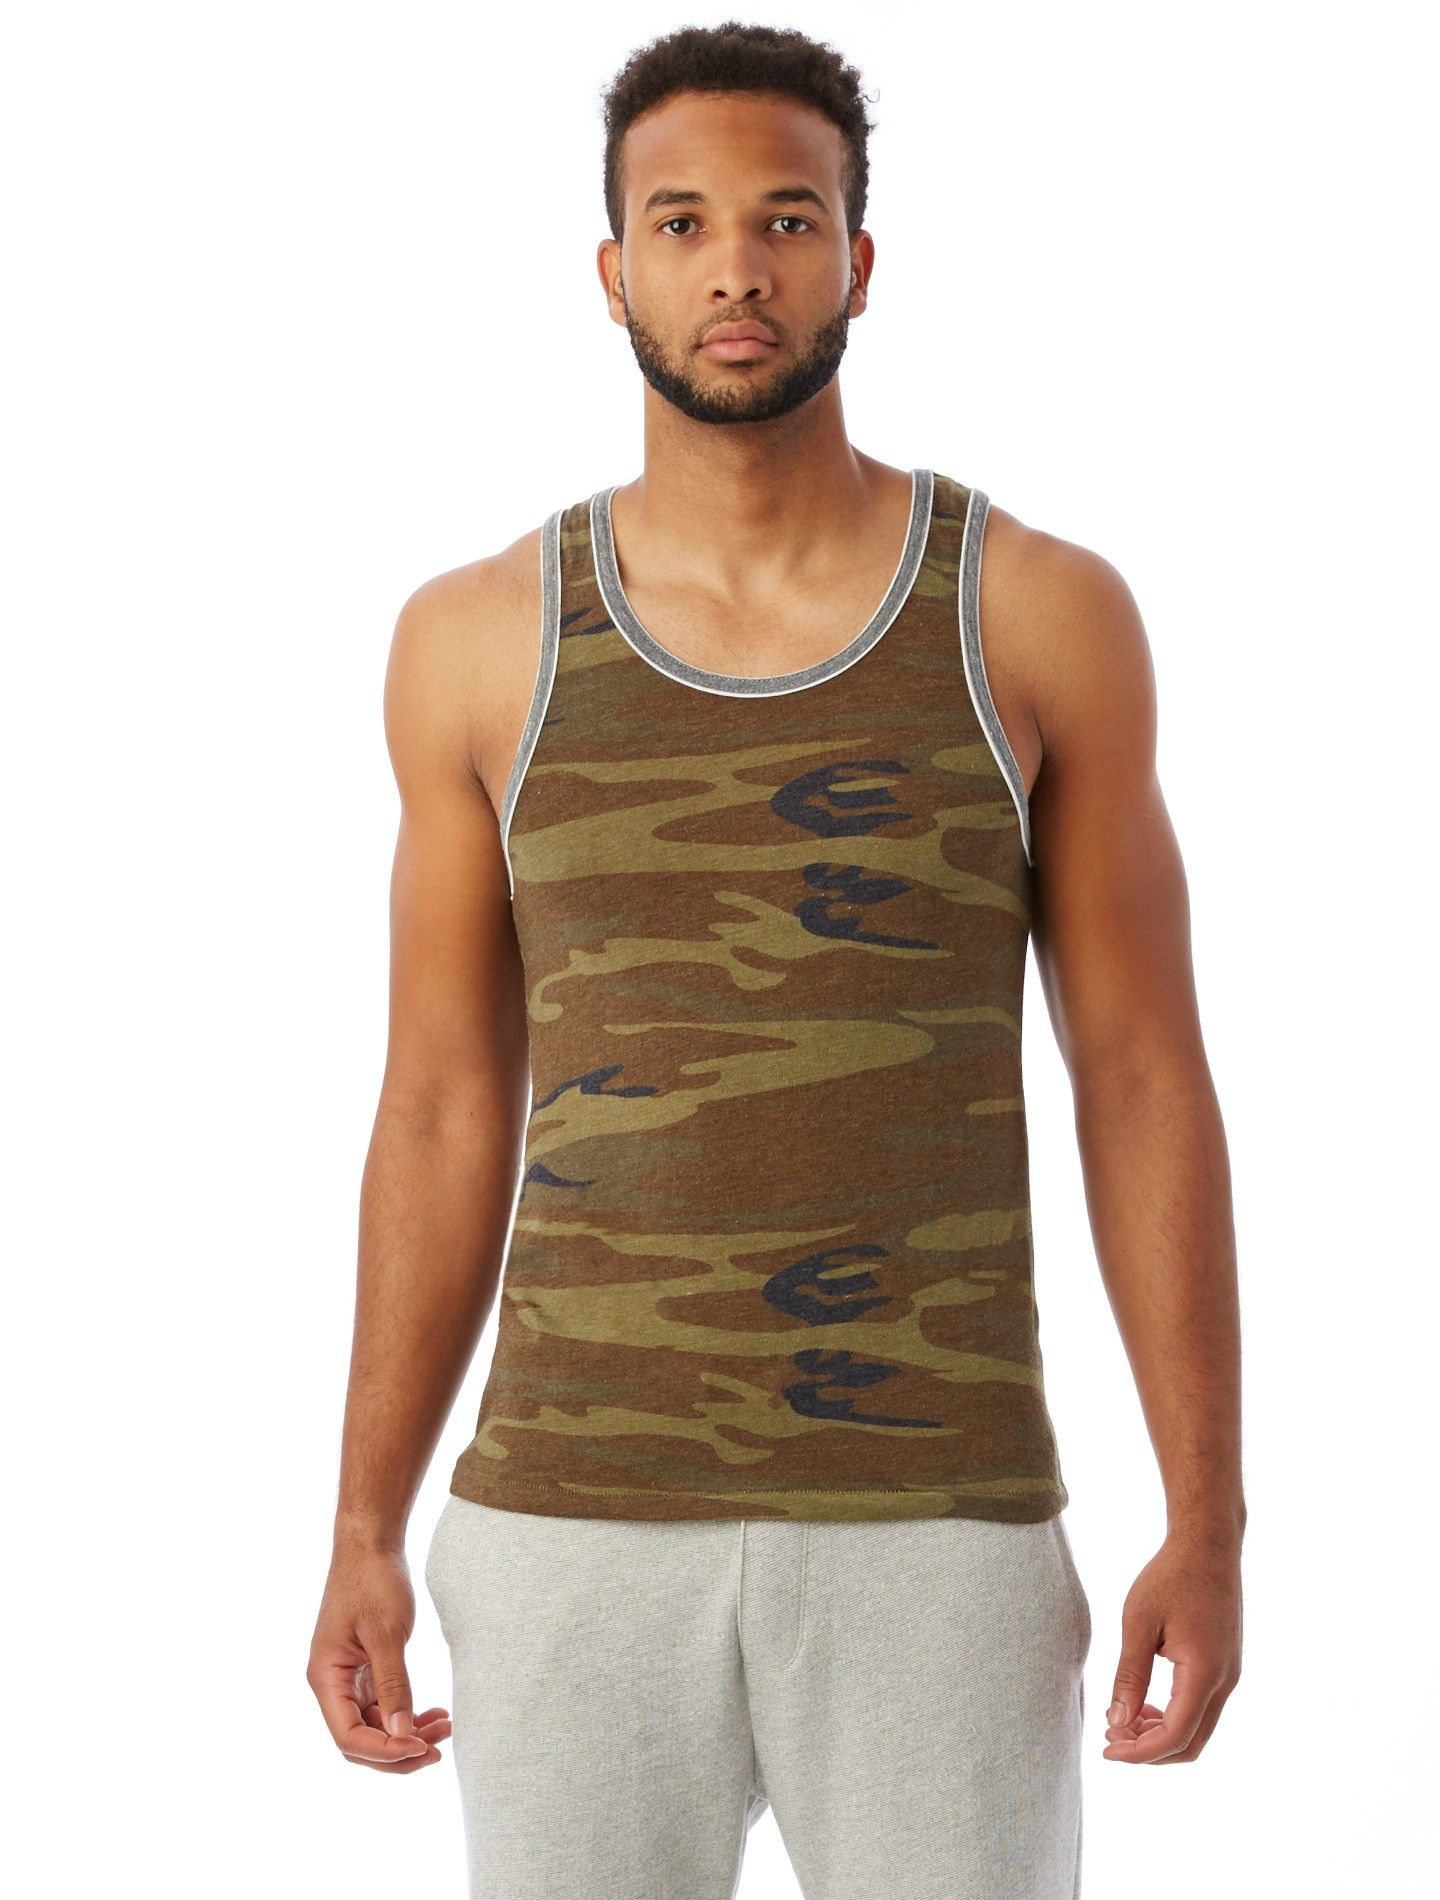 Double Ringer Printed EcoJersey Tank Top Jersey tank